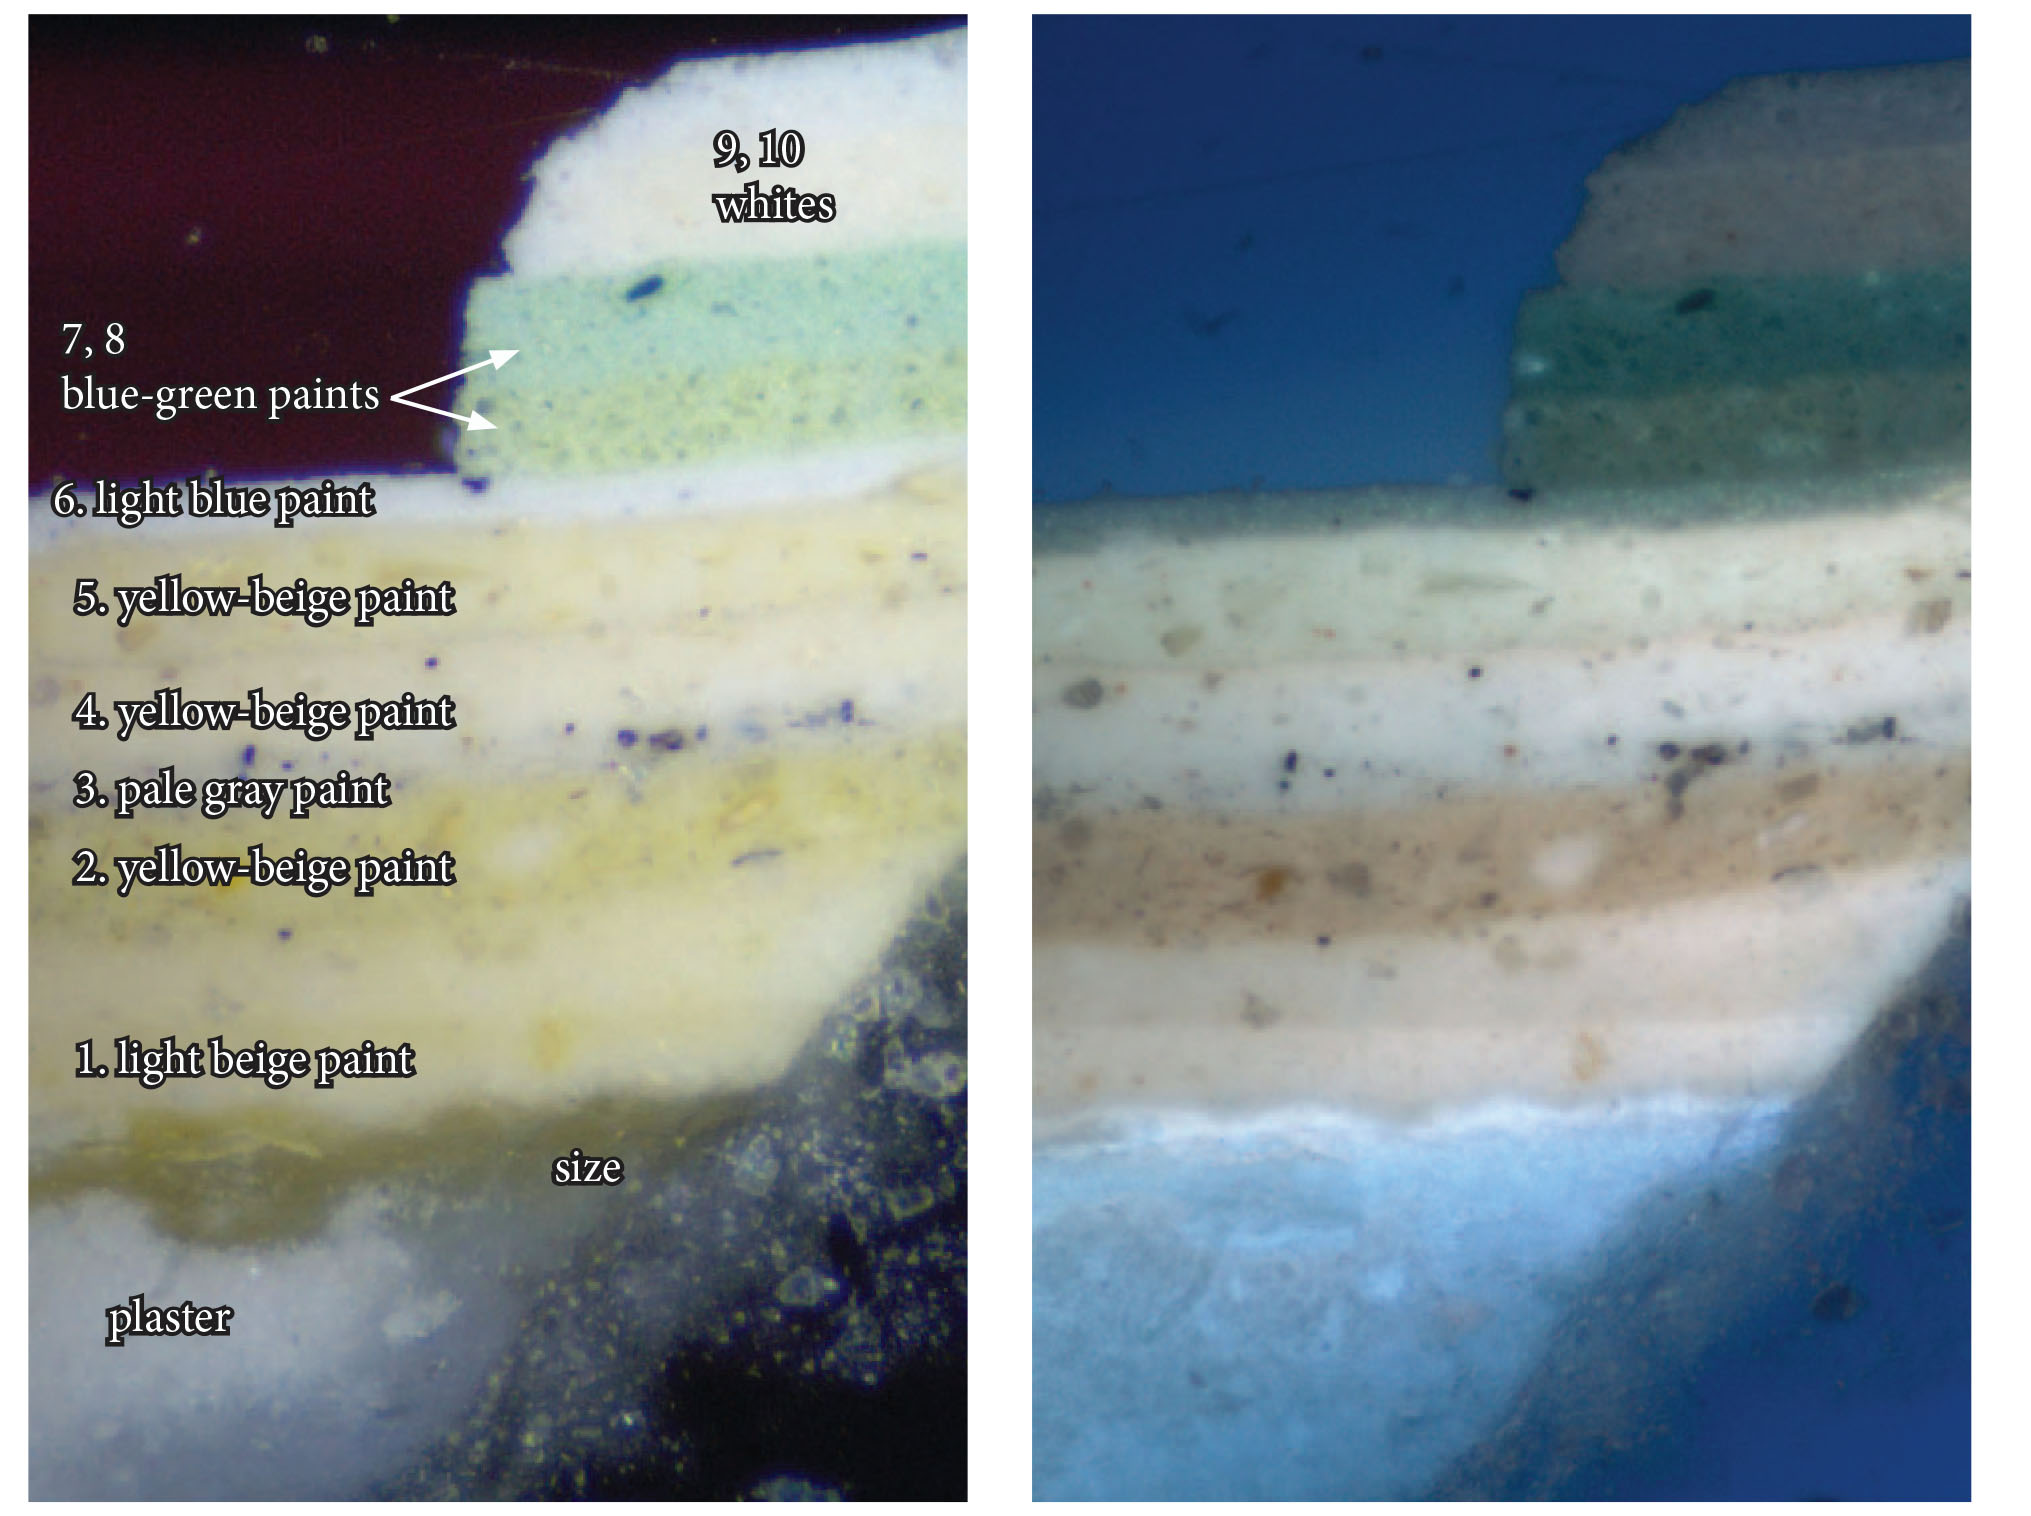 Above: Cross-section images, magnified 200X, of the orignal decorative finish (1. light beige paint) on plaster, under at least nine other paint layers. On the left is viewed under visible light and on the right under UV light (cross-section analysis and image by Kirsten Travers Moffit).